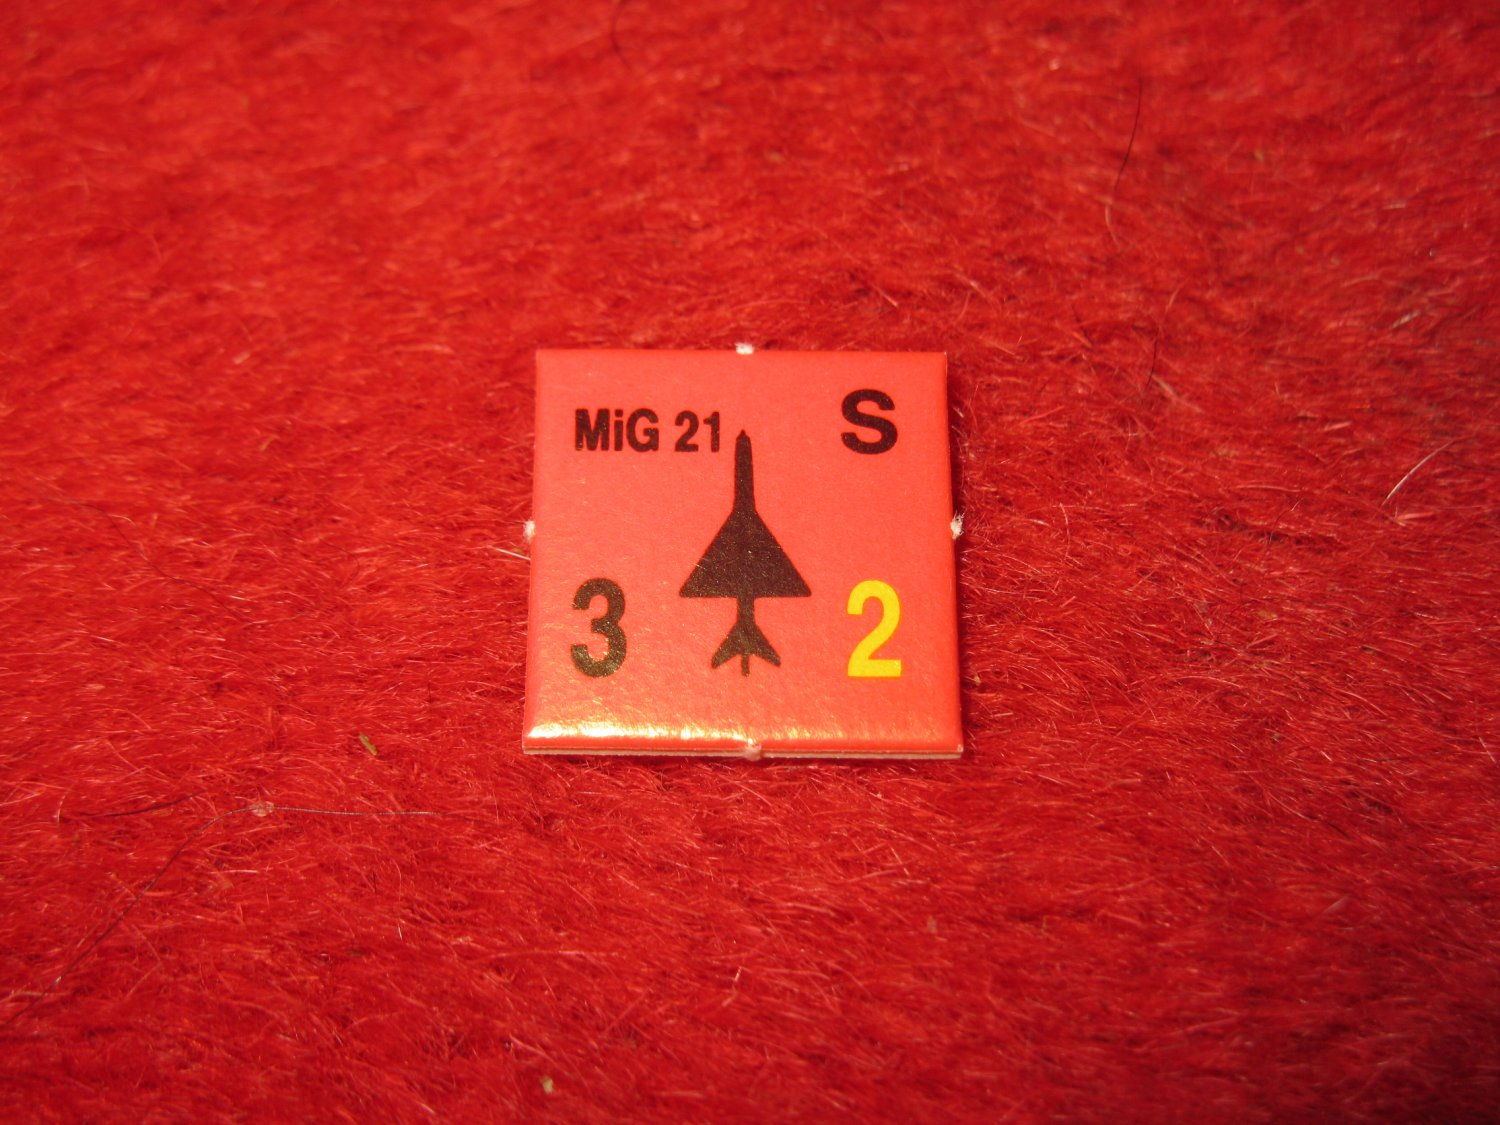 1988 The Hunt for Red October Board Game Piece: MIG 21 red Square Counter